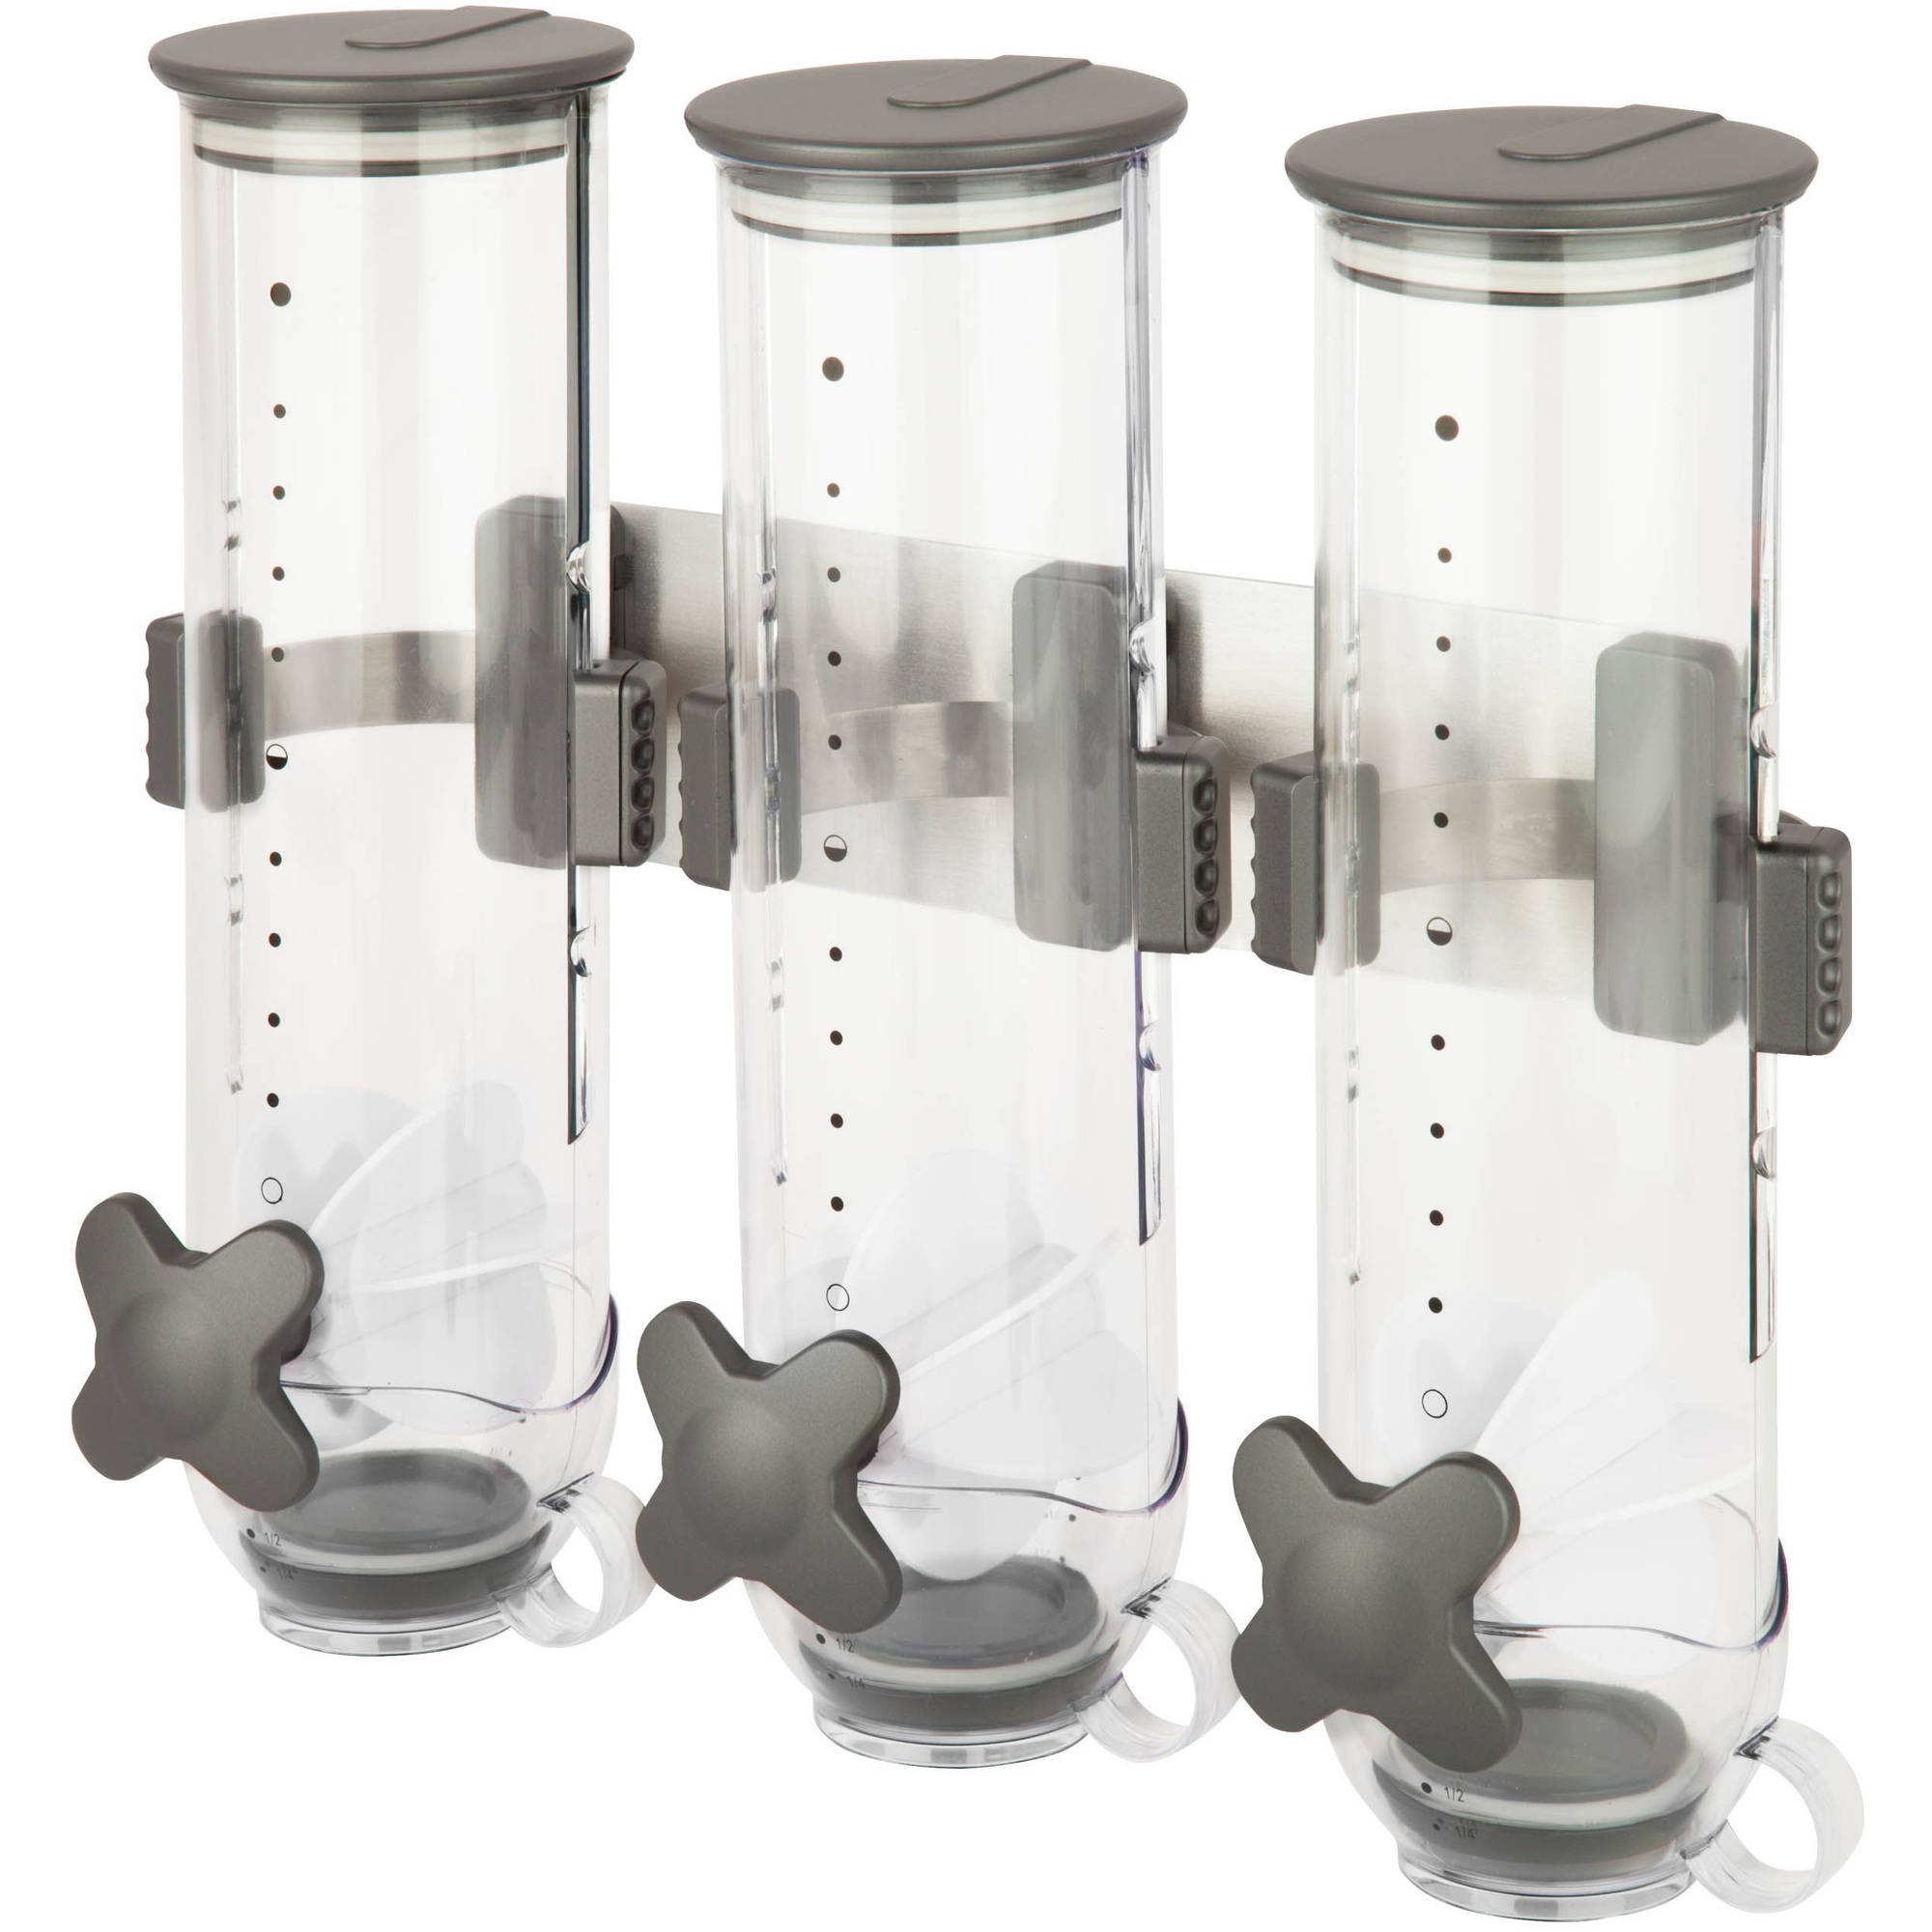 Zevro SmartSpace Edition Triple 13 oz Wall Mount Dispenser, Clear/Charcoal